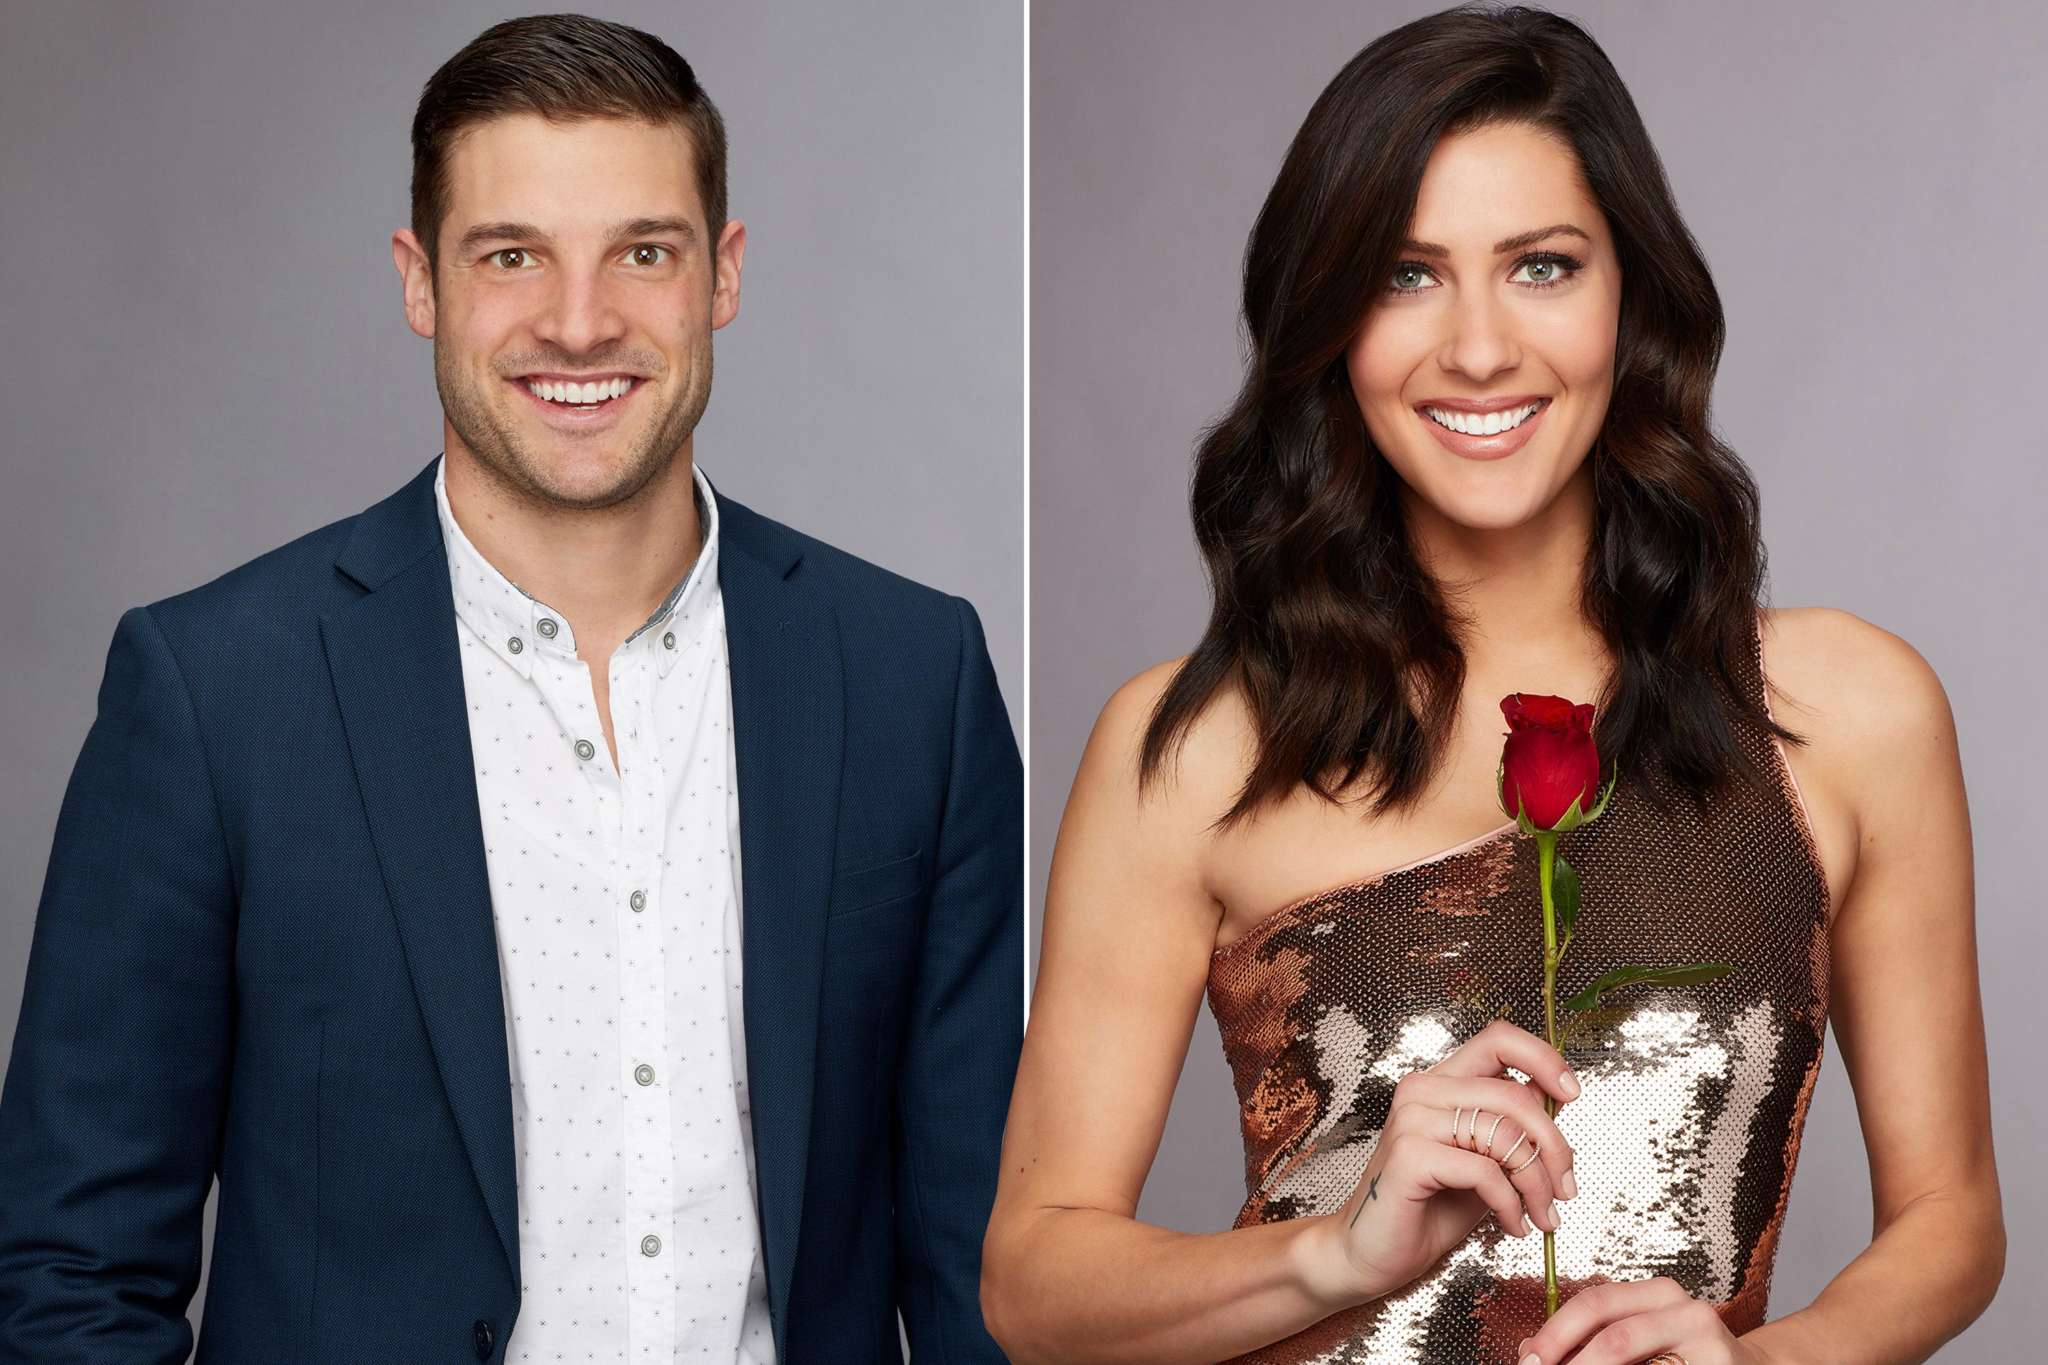 becca-kufrin-says-shes-been-finding-the-light-amid-garrett-yrigoyen-split-reports-and-fans-are-sure-this-is-about-him